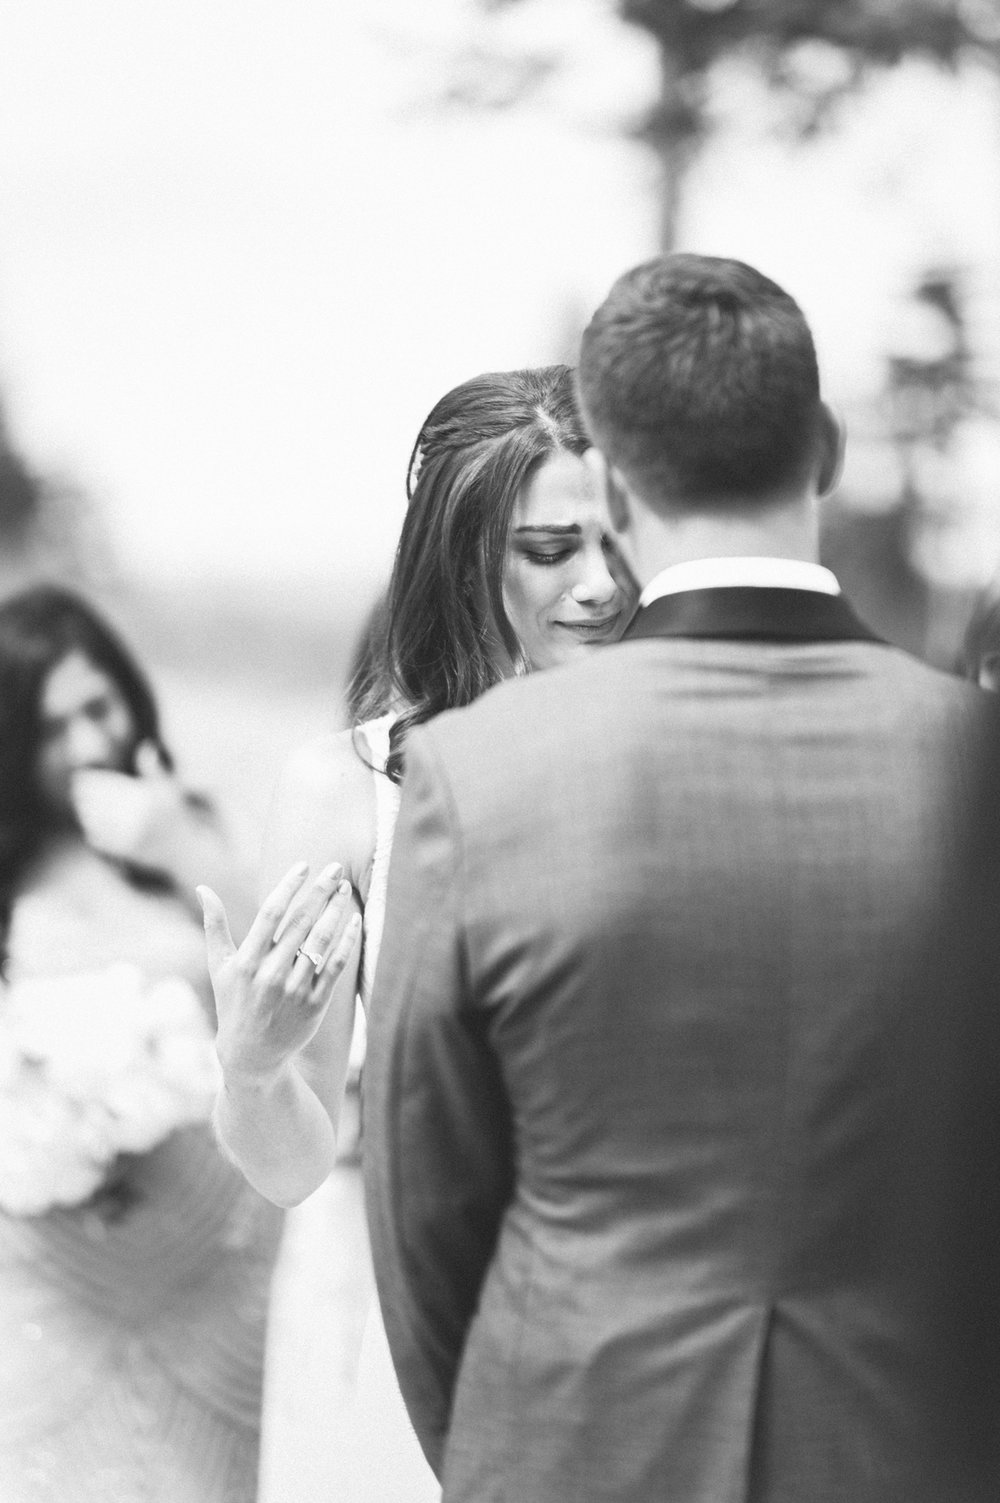 305-beaver-creek--mountain-top-wedding--vows--emotional--black-and-white.jpg